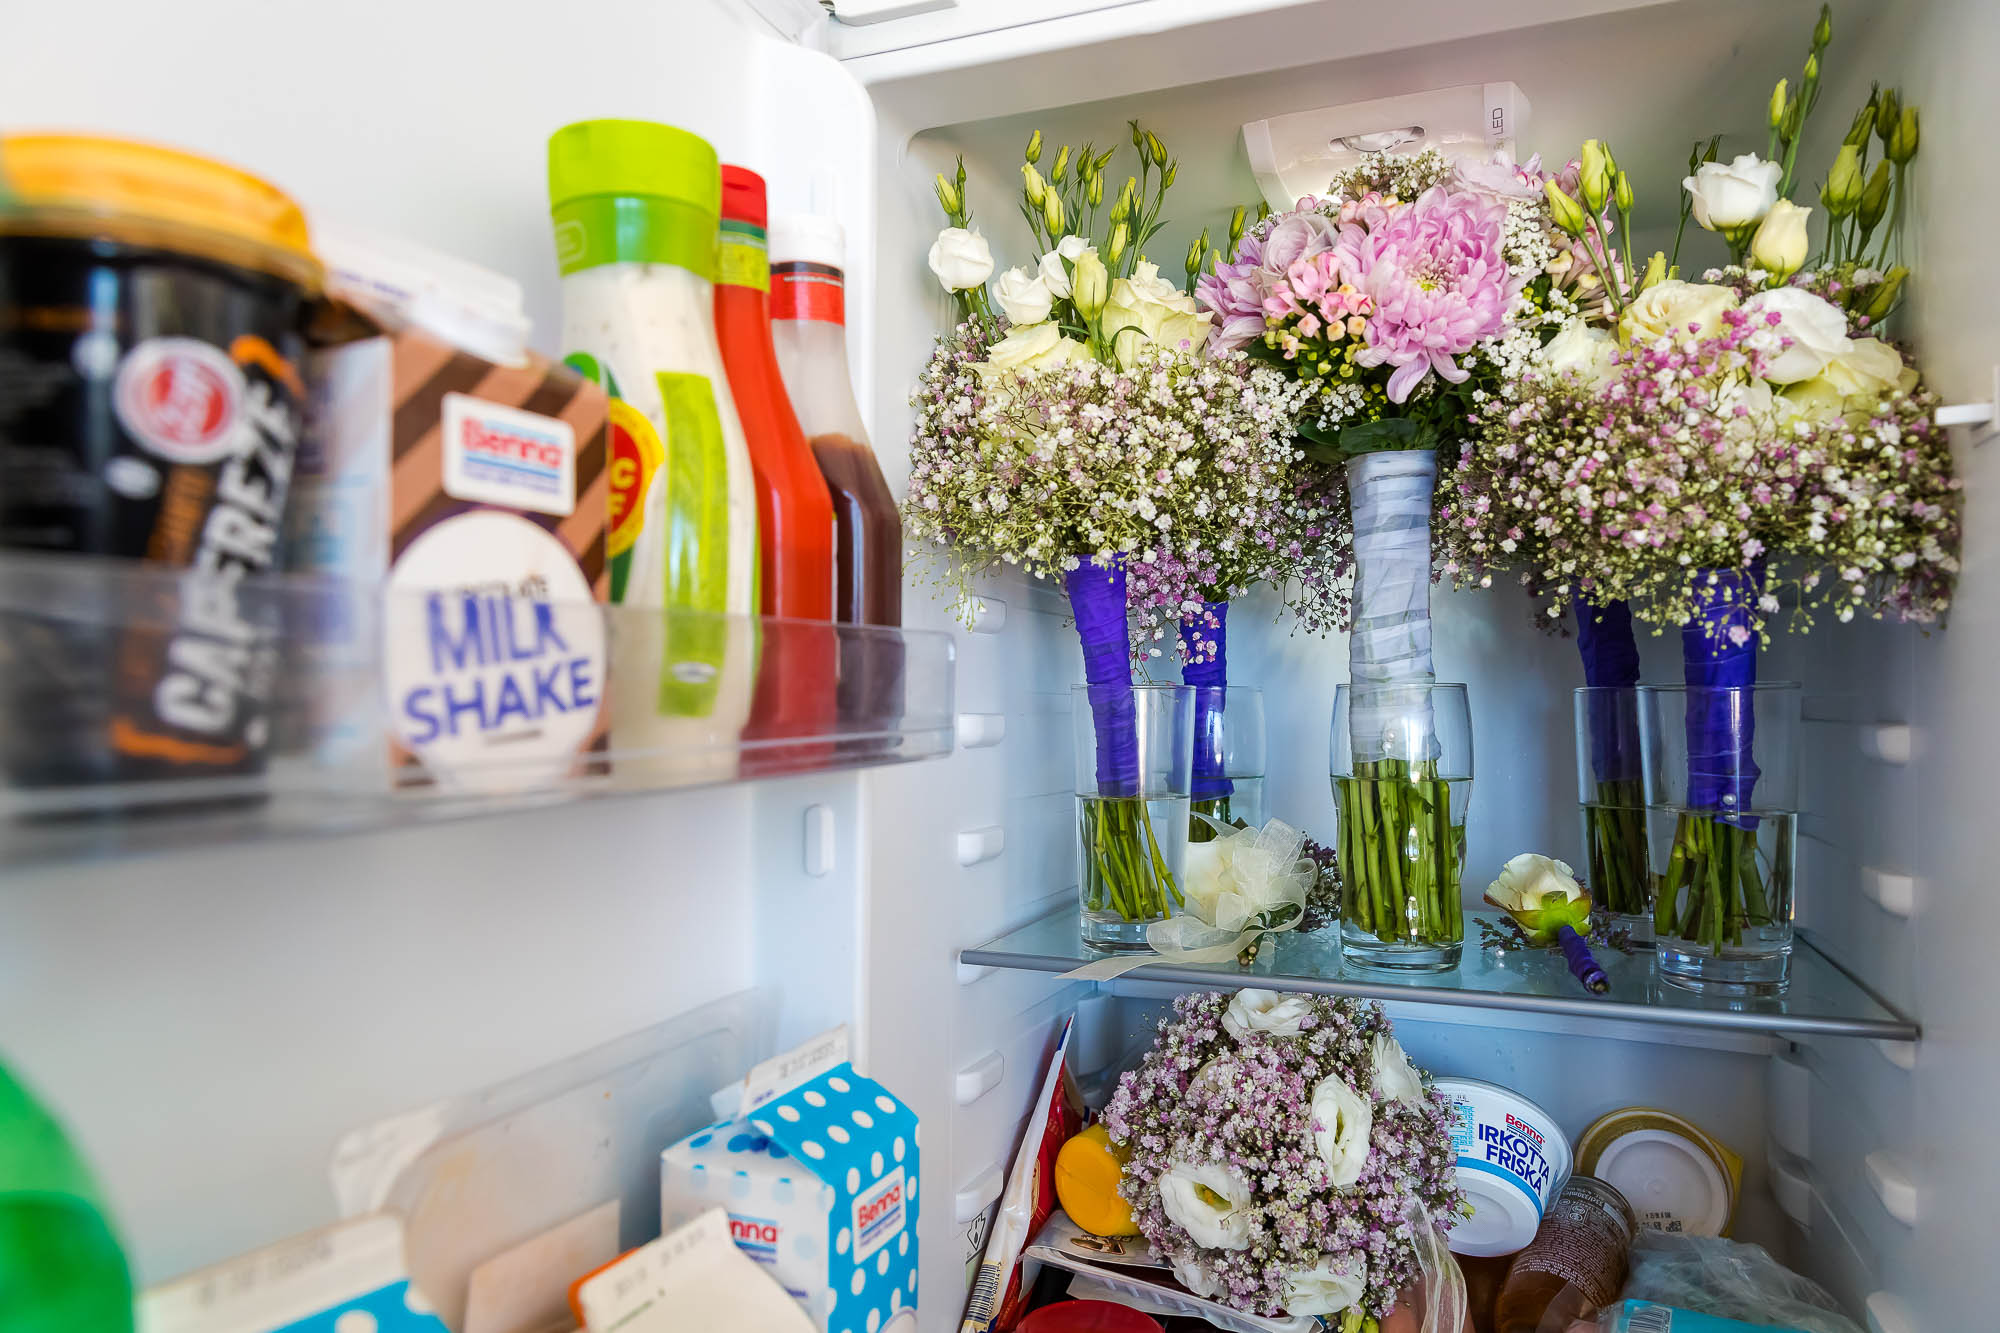 Bridal wedding day flowers in the fridge. Photo by Elliot Nichol Photography.